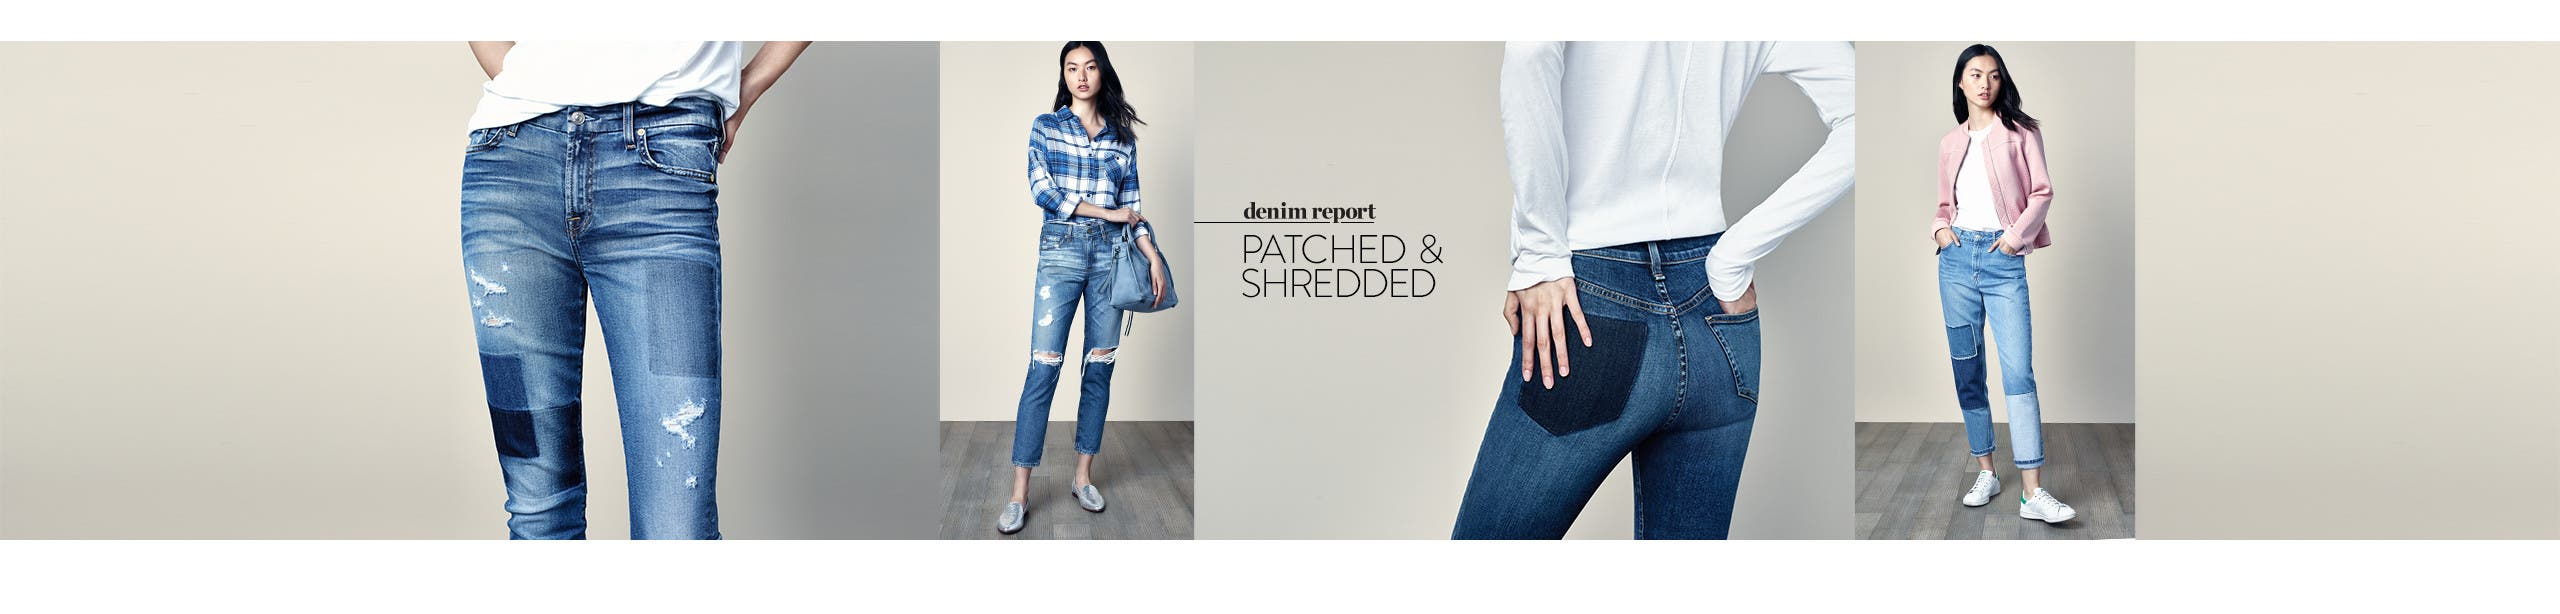 Denim Report: patched and shredded women's jeans.